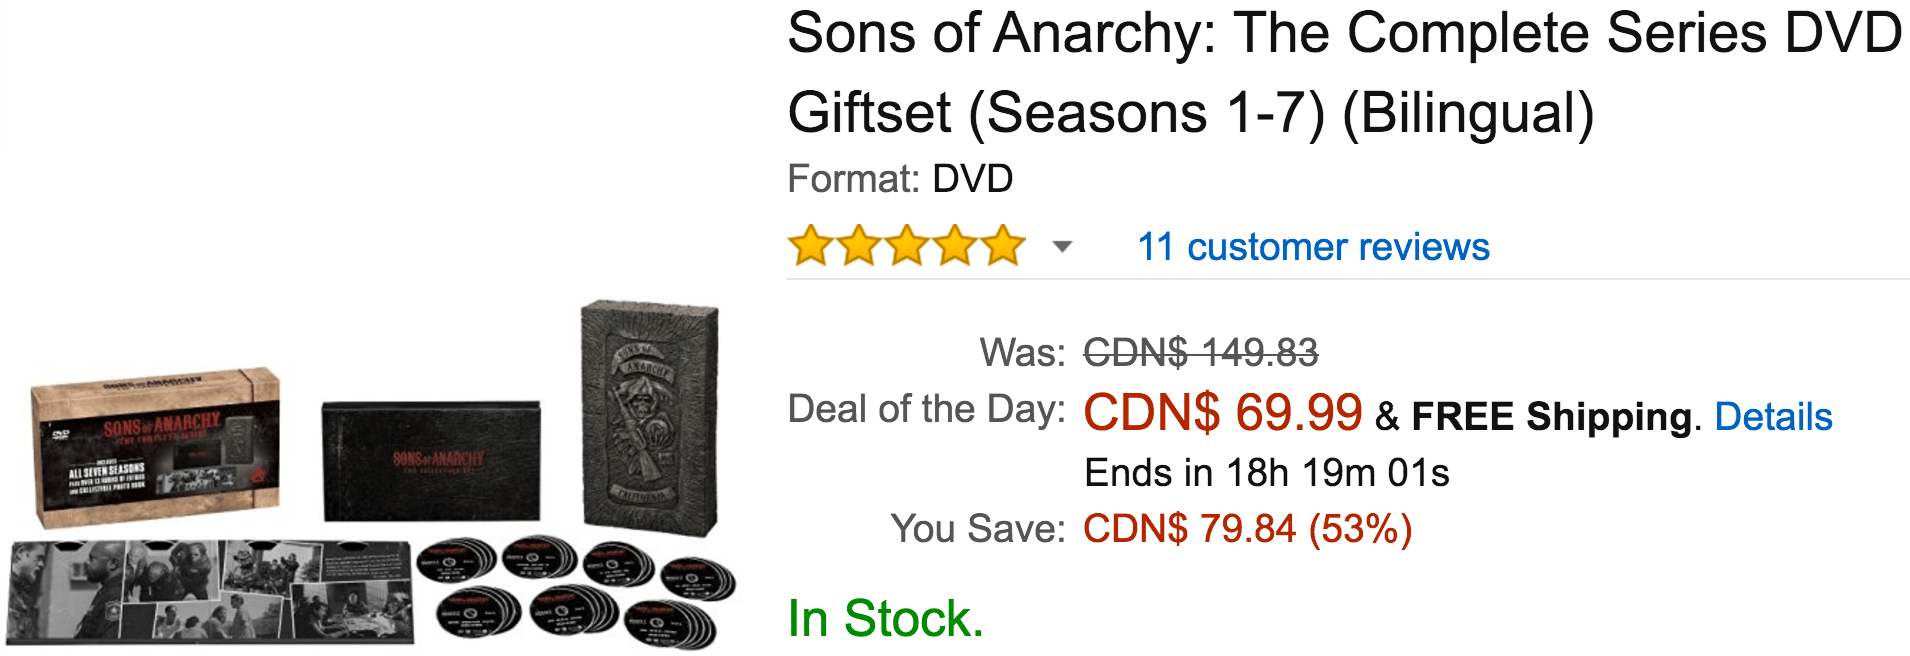 Amazon Canada Black Friday Deals: Save 53% Off Sons of Anarchy: The Complete Series, 57% on Brita Water Filter, 48% on Select Moana, Frozen, and Disney Princess Toys